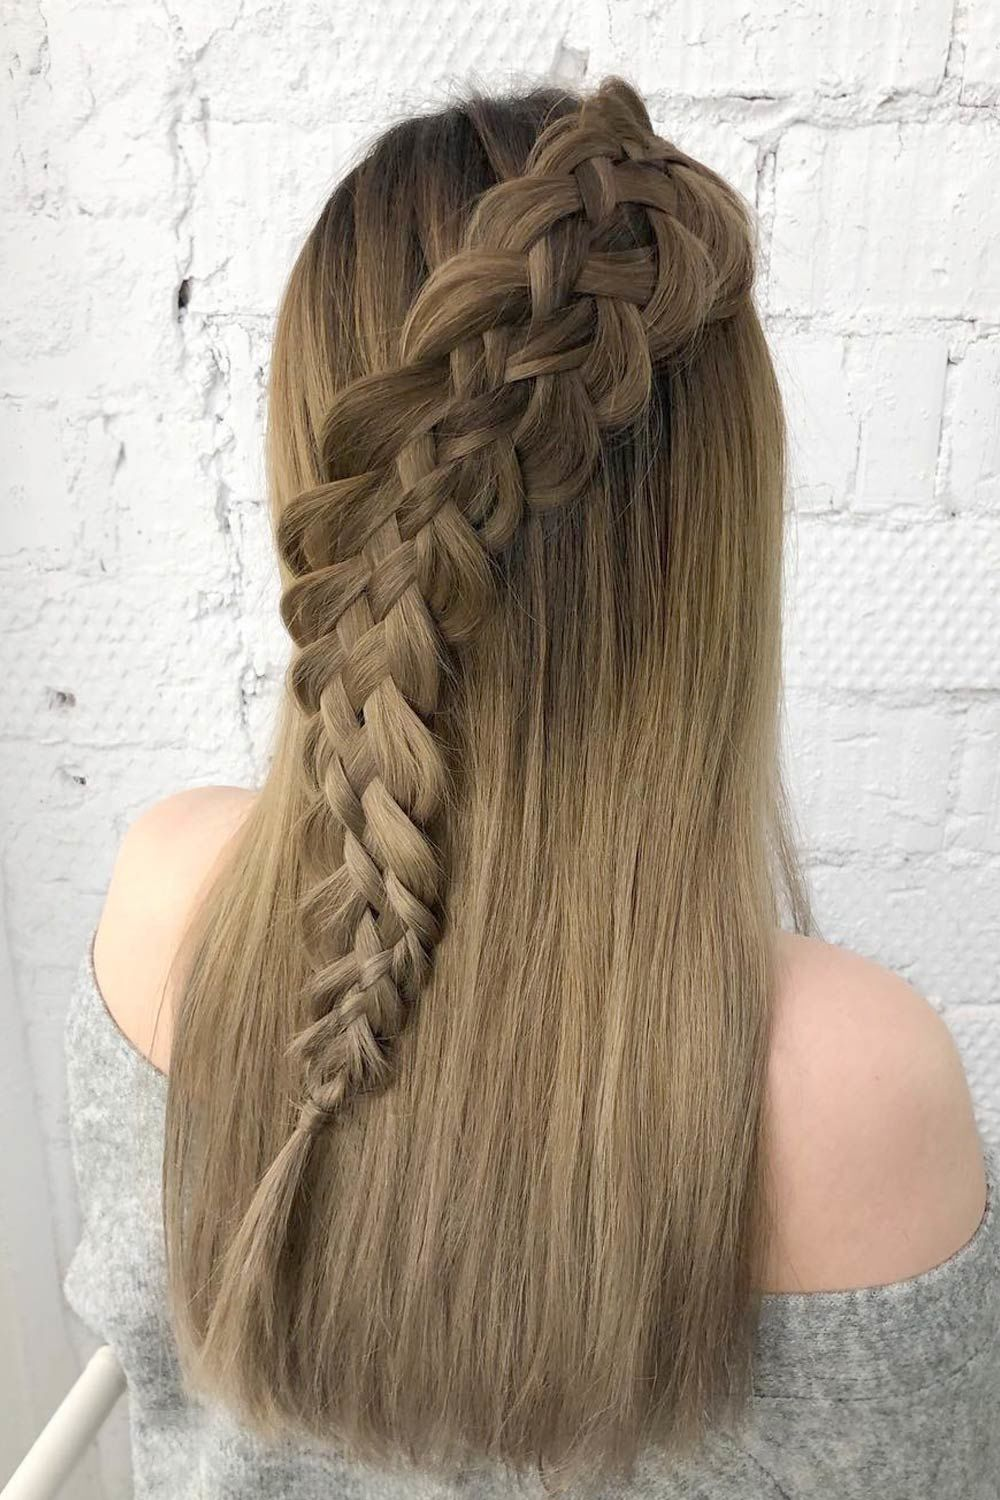 Half Updo Hairstyle With Snake Braid